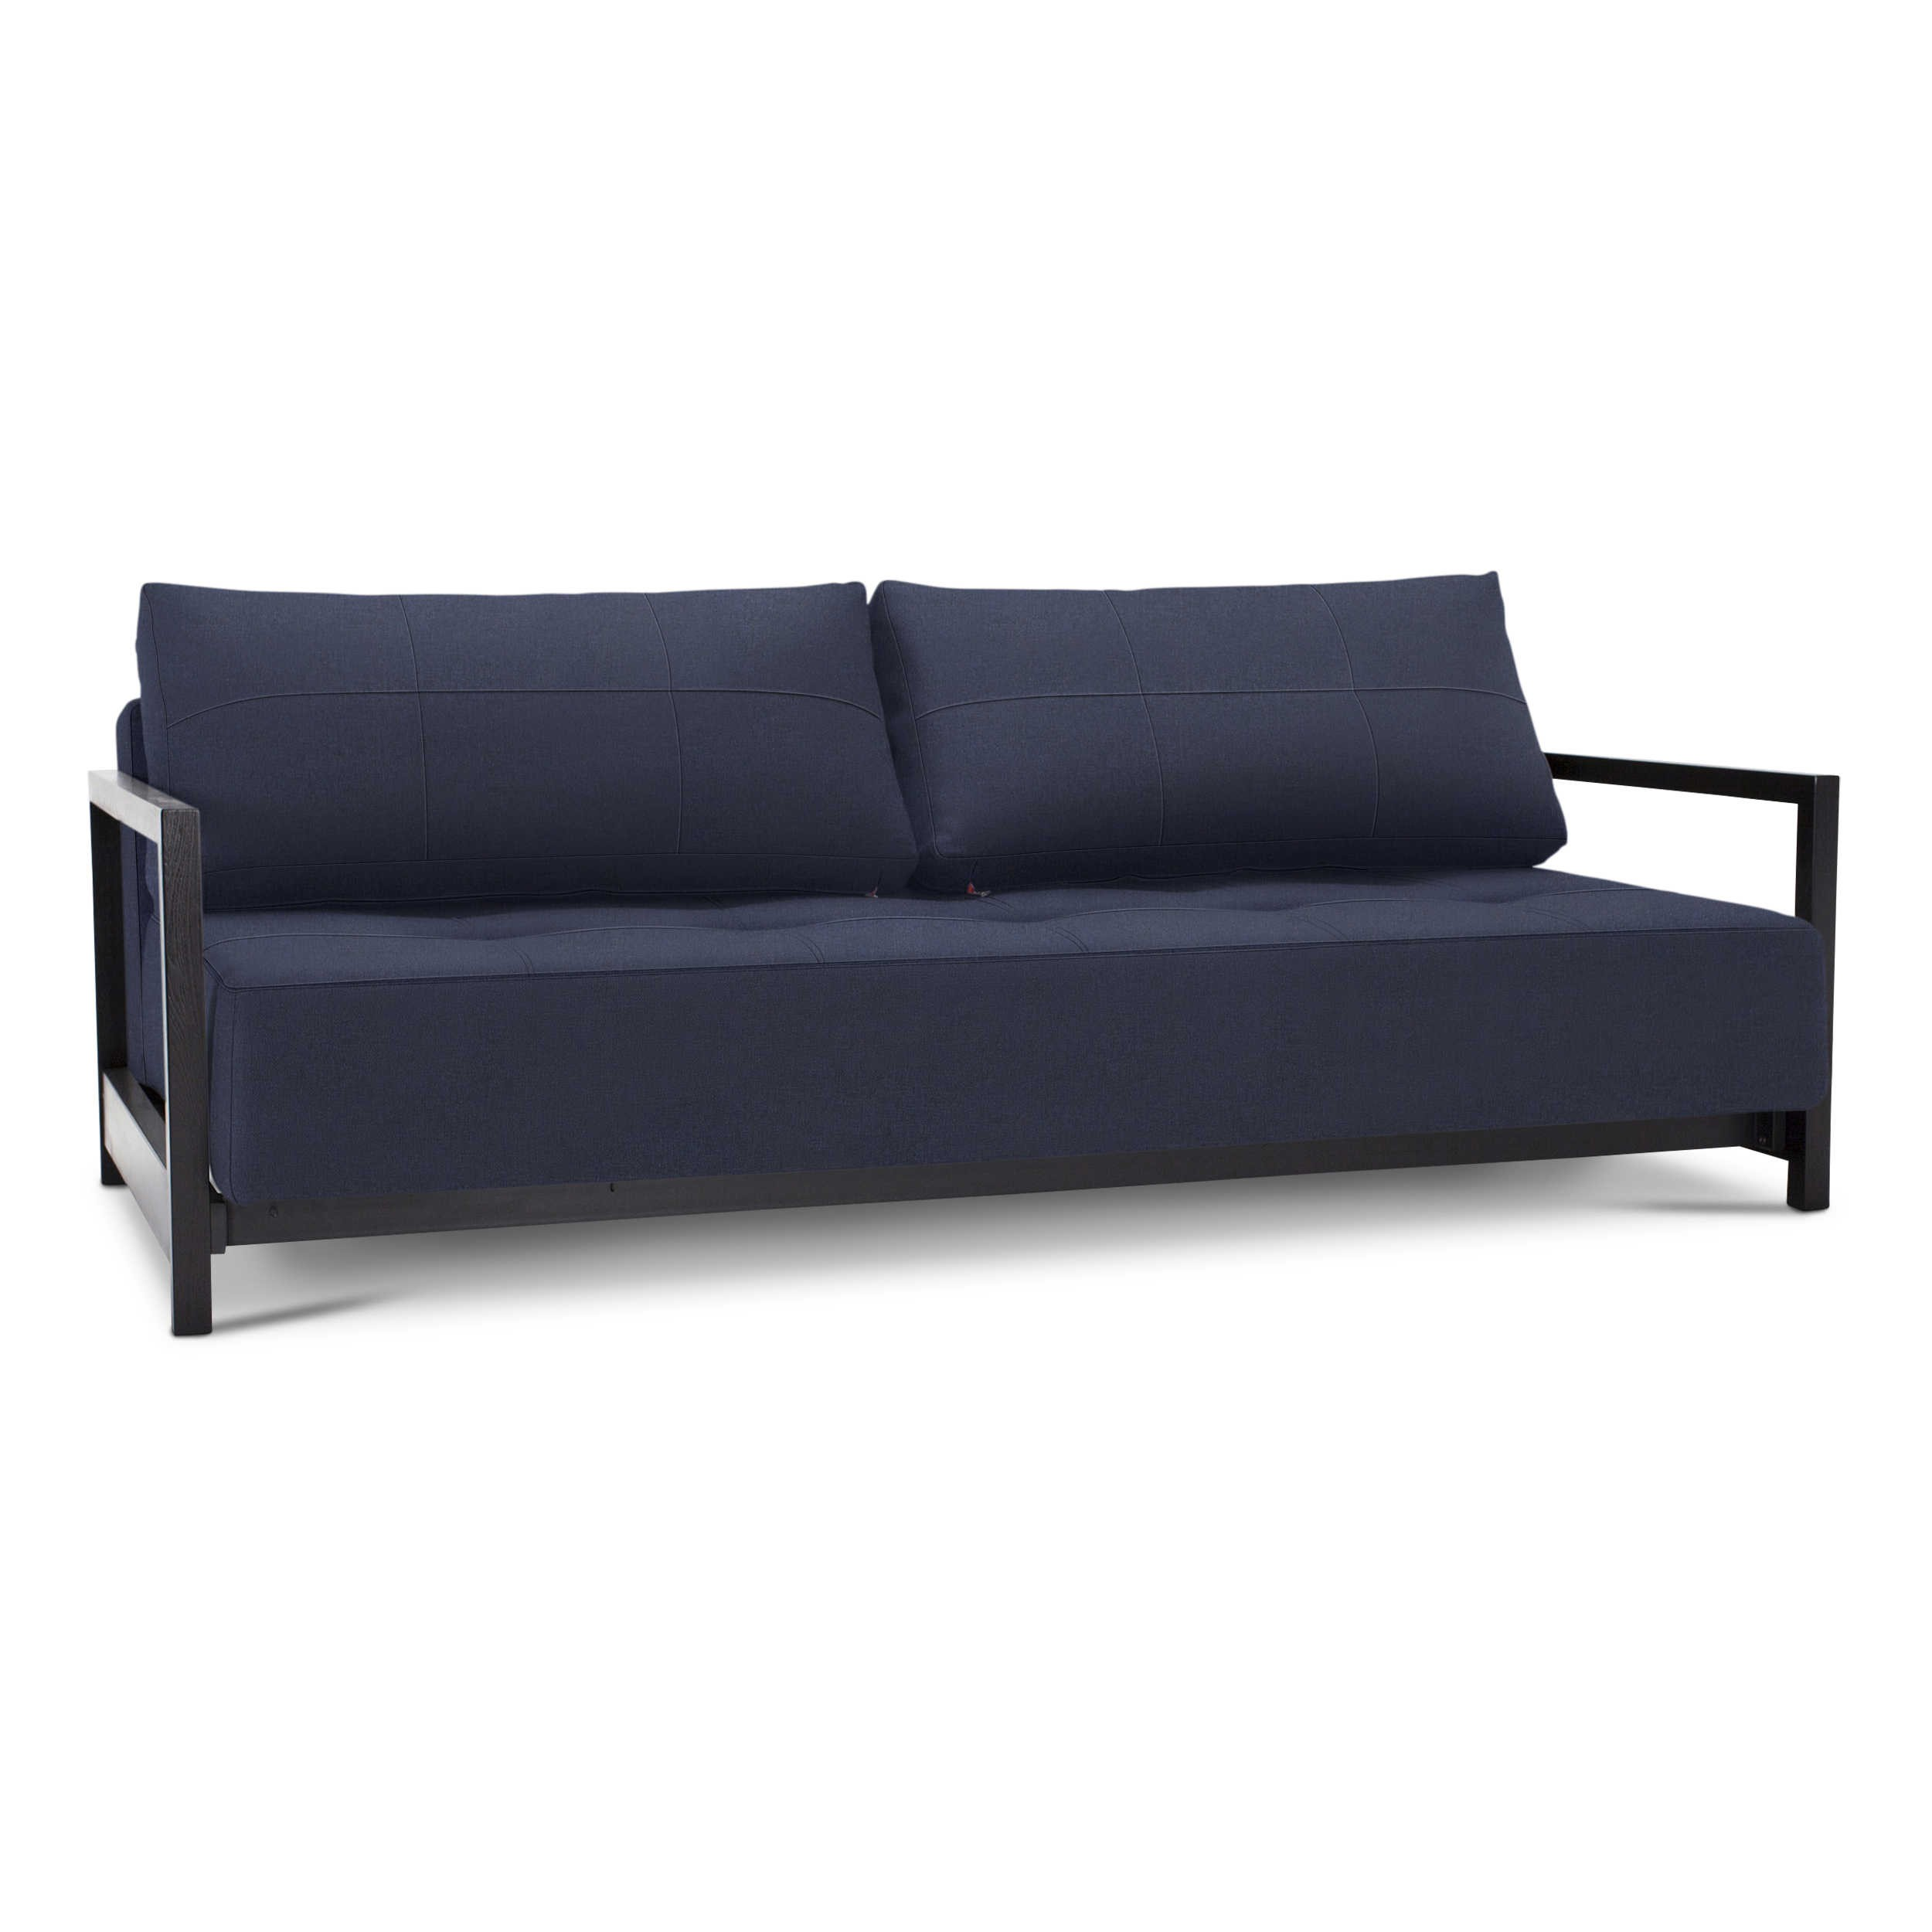 innovation schlafsofa bifrost deluxe blau stoff online kaufen bei woonio. Black Bedroom Furniture Sets. Home Design Ideas